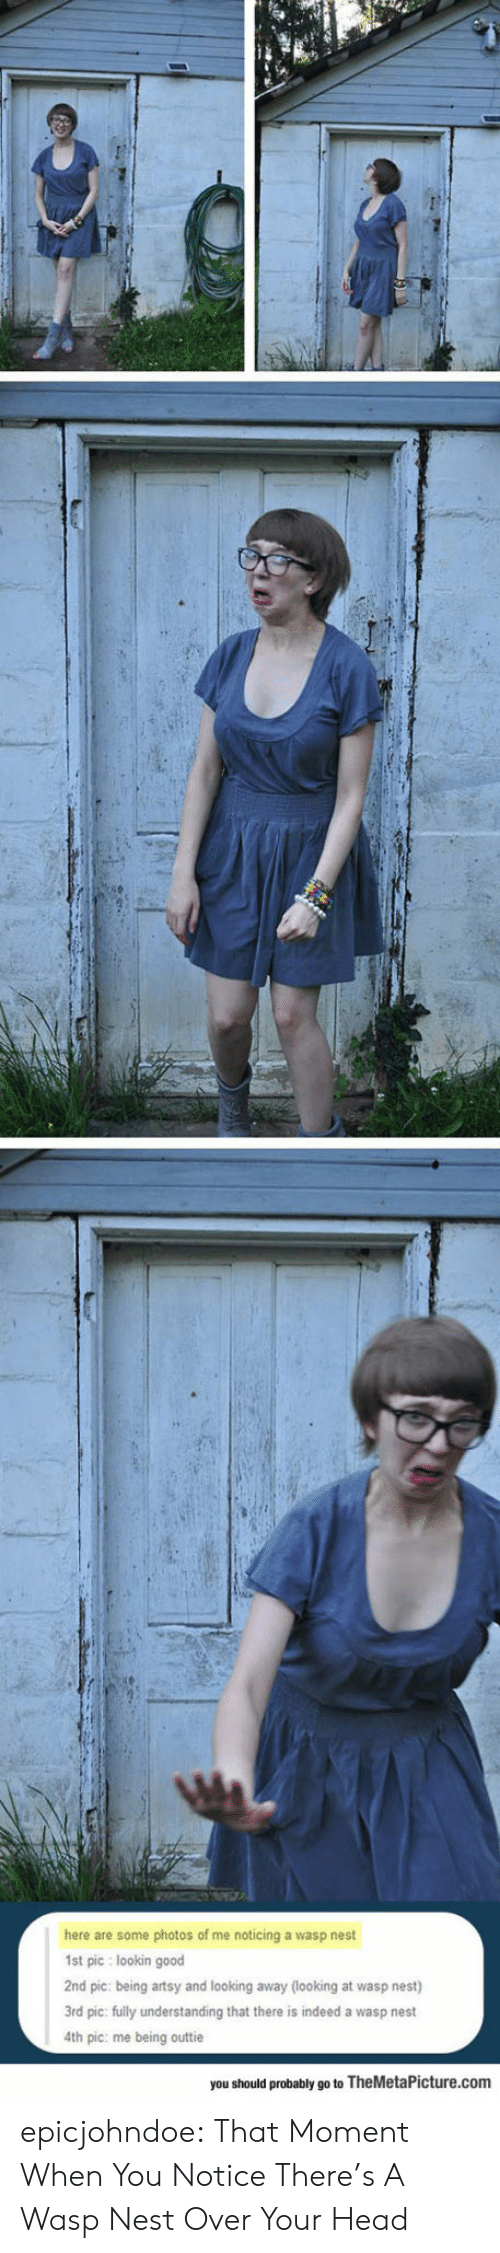 looking away: here are some photos of me noticing a wasp nest  1st pic lookin good  2nd pic: being artsy and looking away (looking at wasp nest)  3rd pic: fully understanding that there is indeed a wasp nest  4th pic: me being outtie  you should probably go to TheMetaPicture.com epicjohndoe:  That Moment When You Notice There's A Wasp Nest Over Your Head